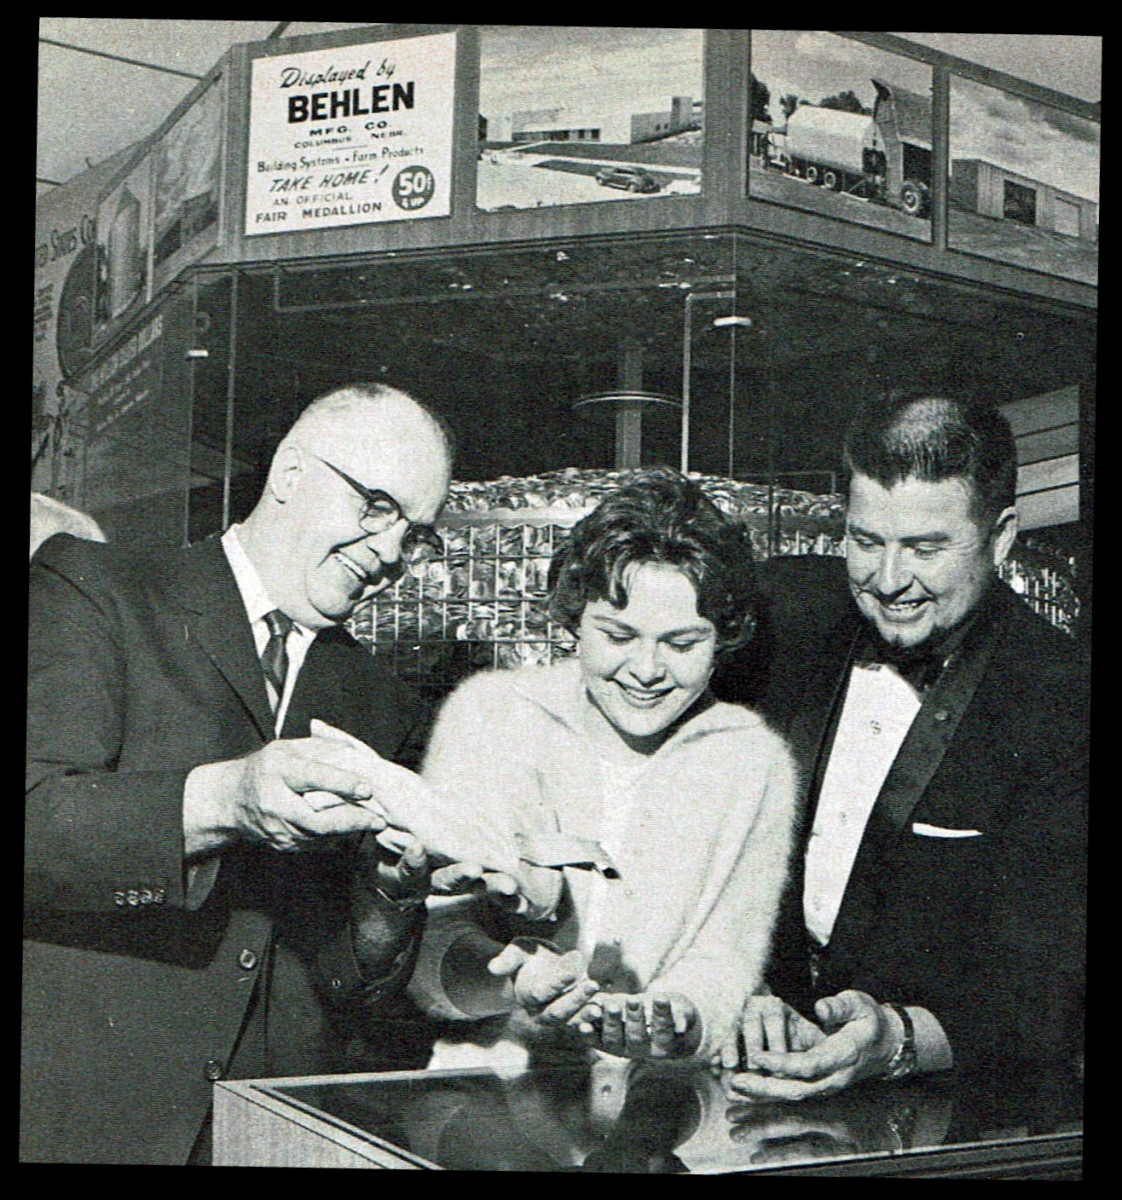 Anne Marbury of Baldwin Park, Calif., was the millionth visitor to the silver dollar display. She received 100 silver dollars from Walter Behlen, left. At right is Barney Tomlinson.